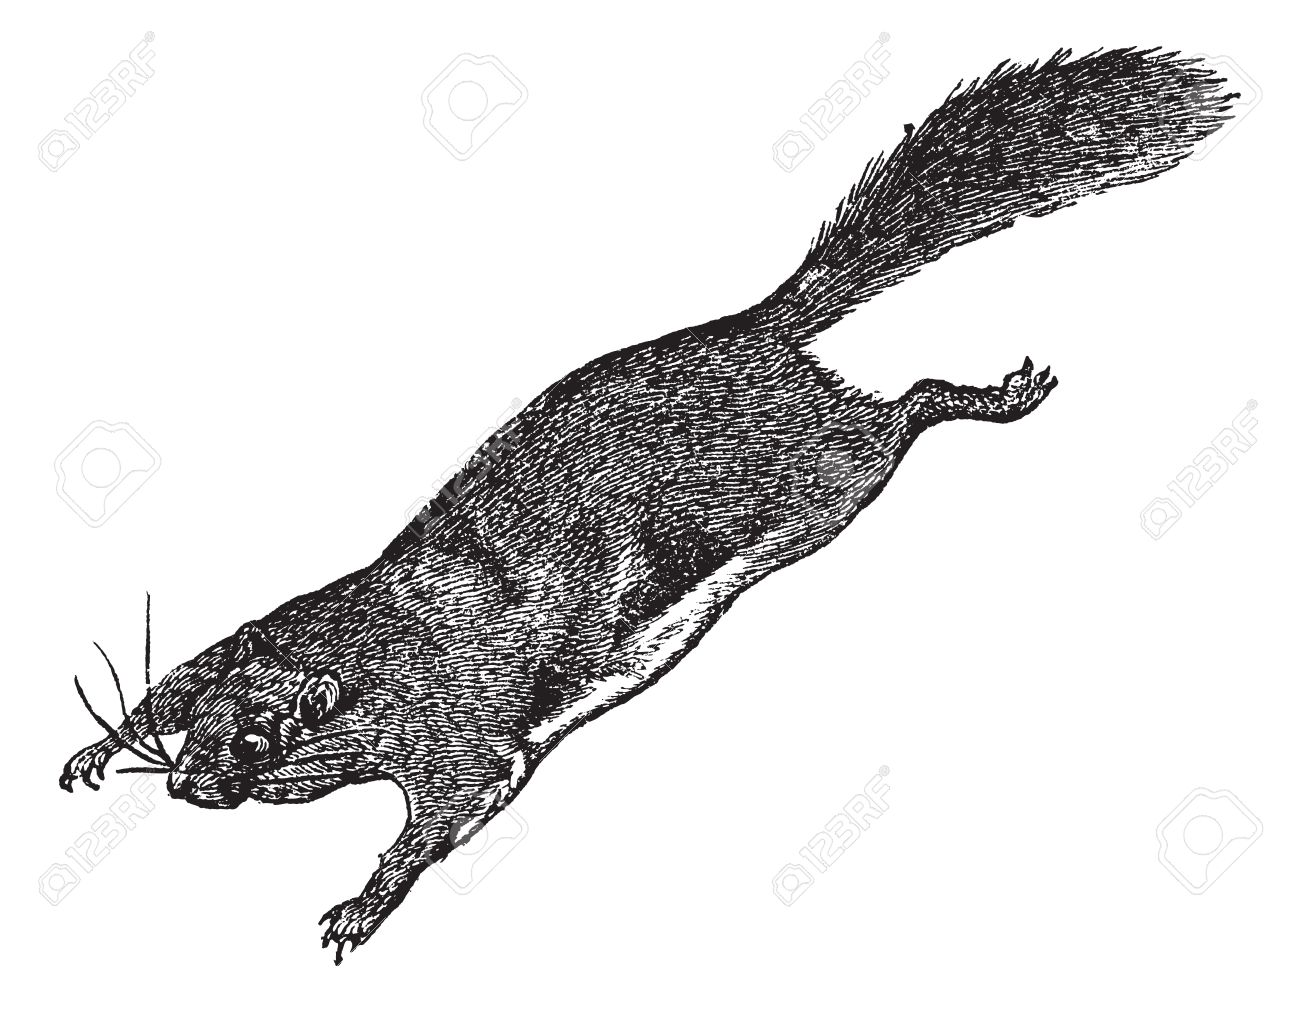 132 flying squirrels stock vector illustration and royalty free